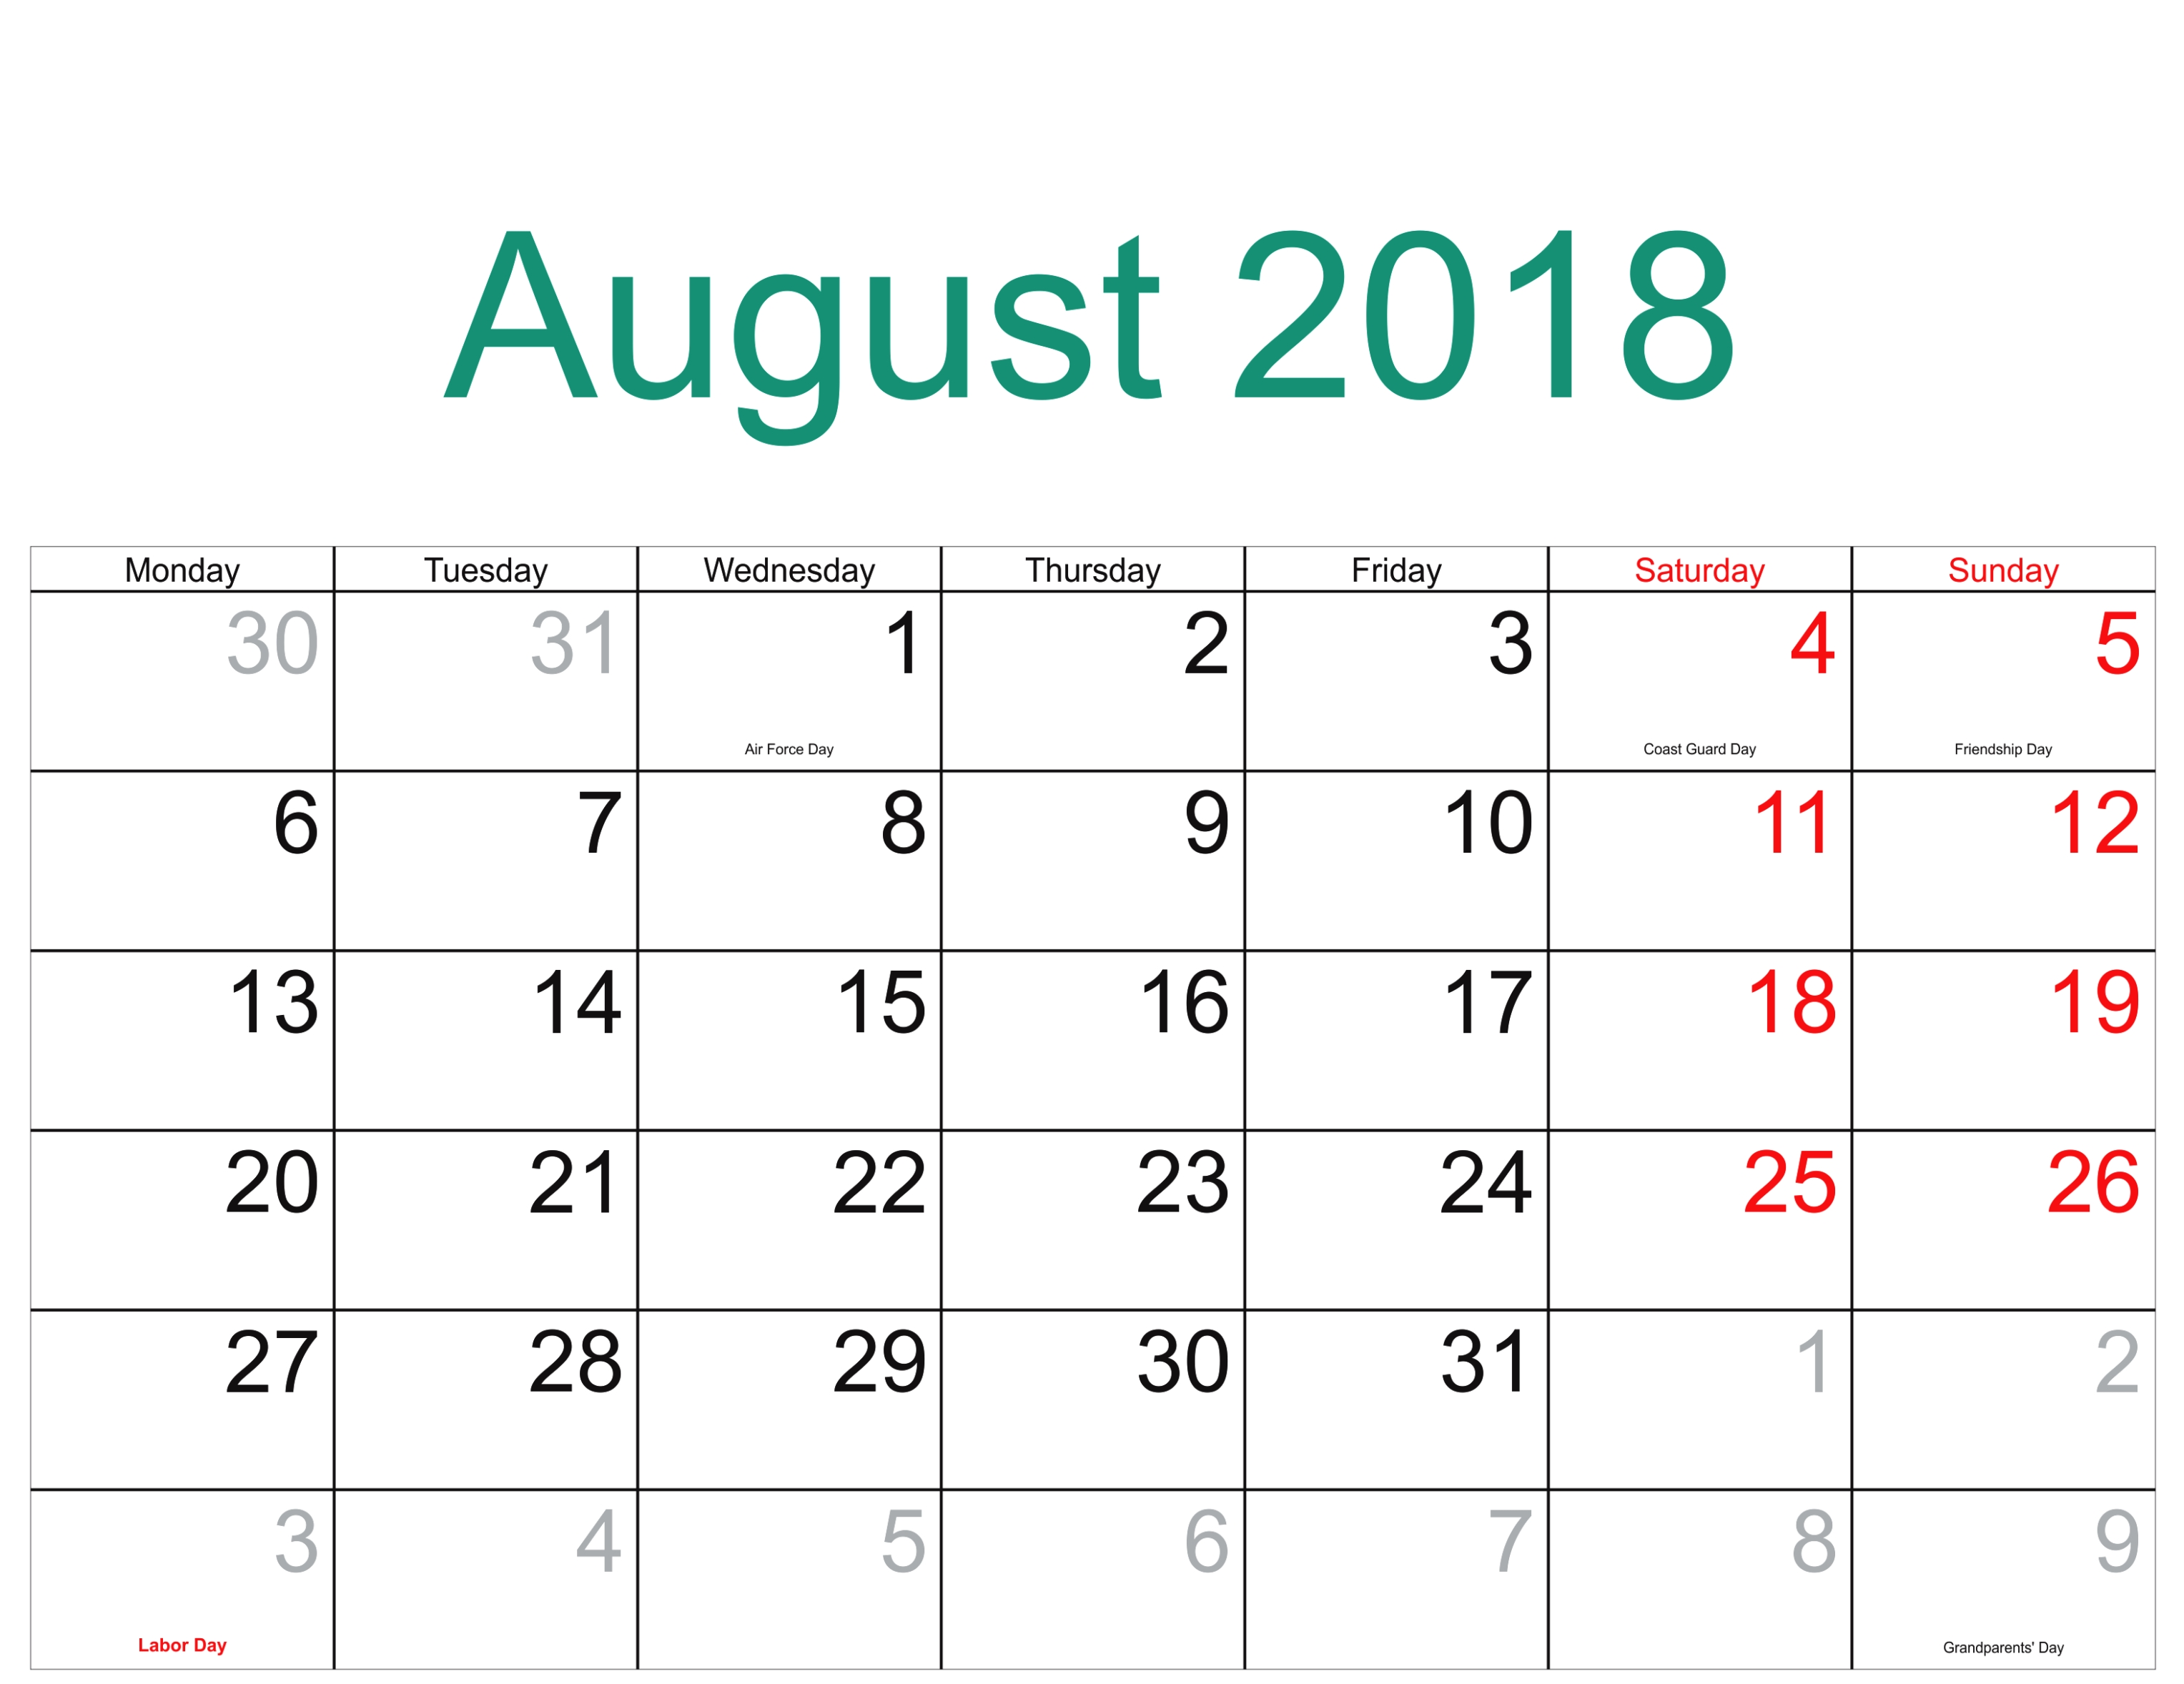 august 2018 calendar us holidays calendar template letter format Calendar August 2018 Printable Uk erdferdf